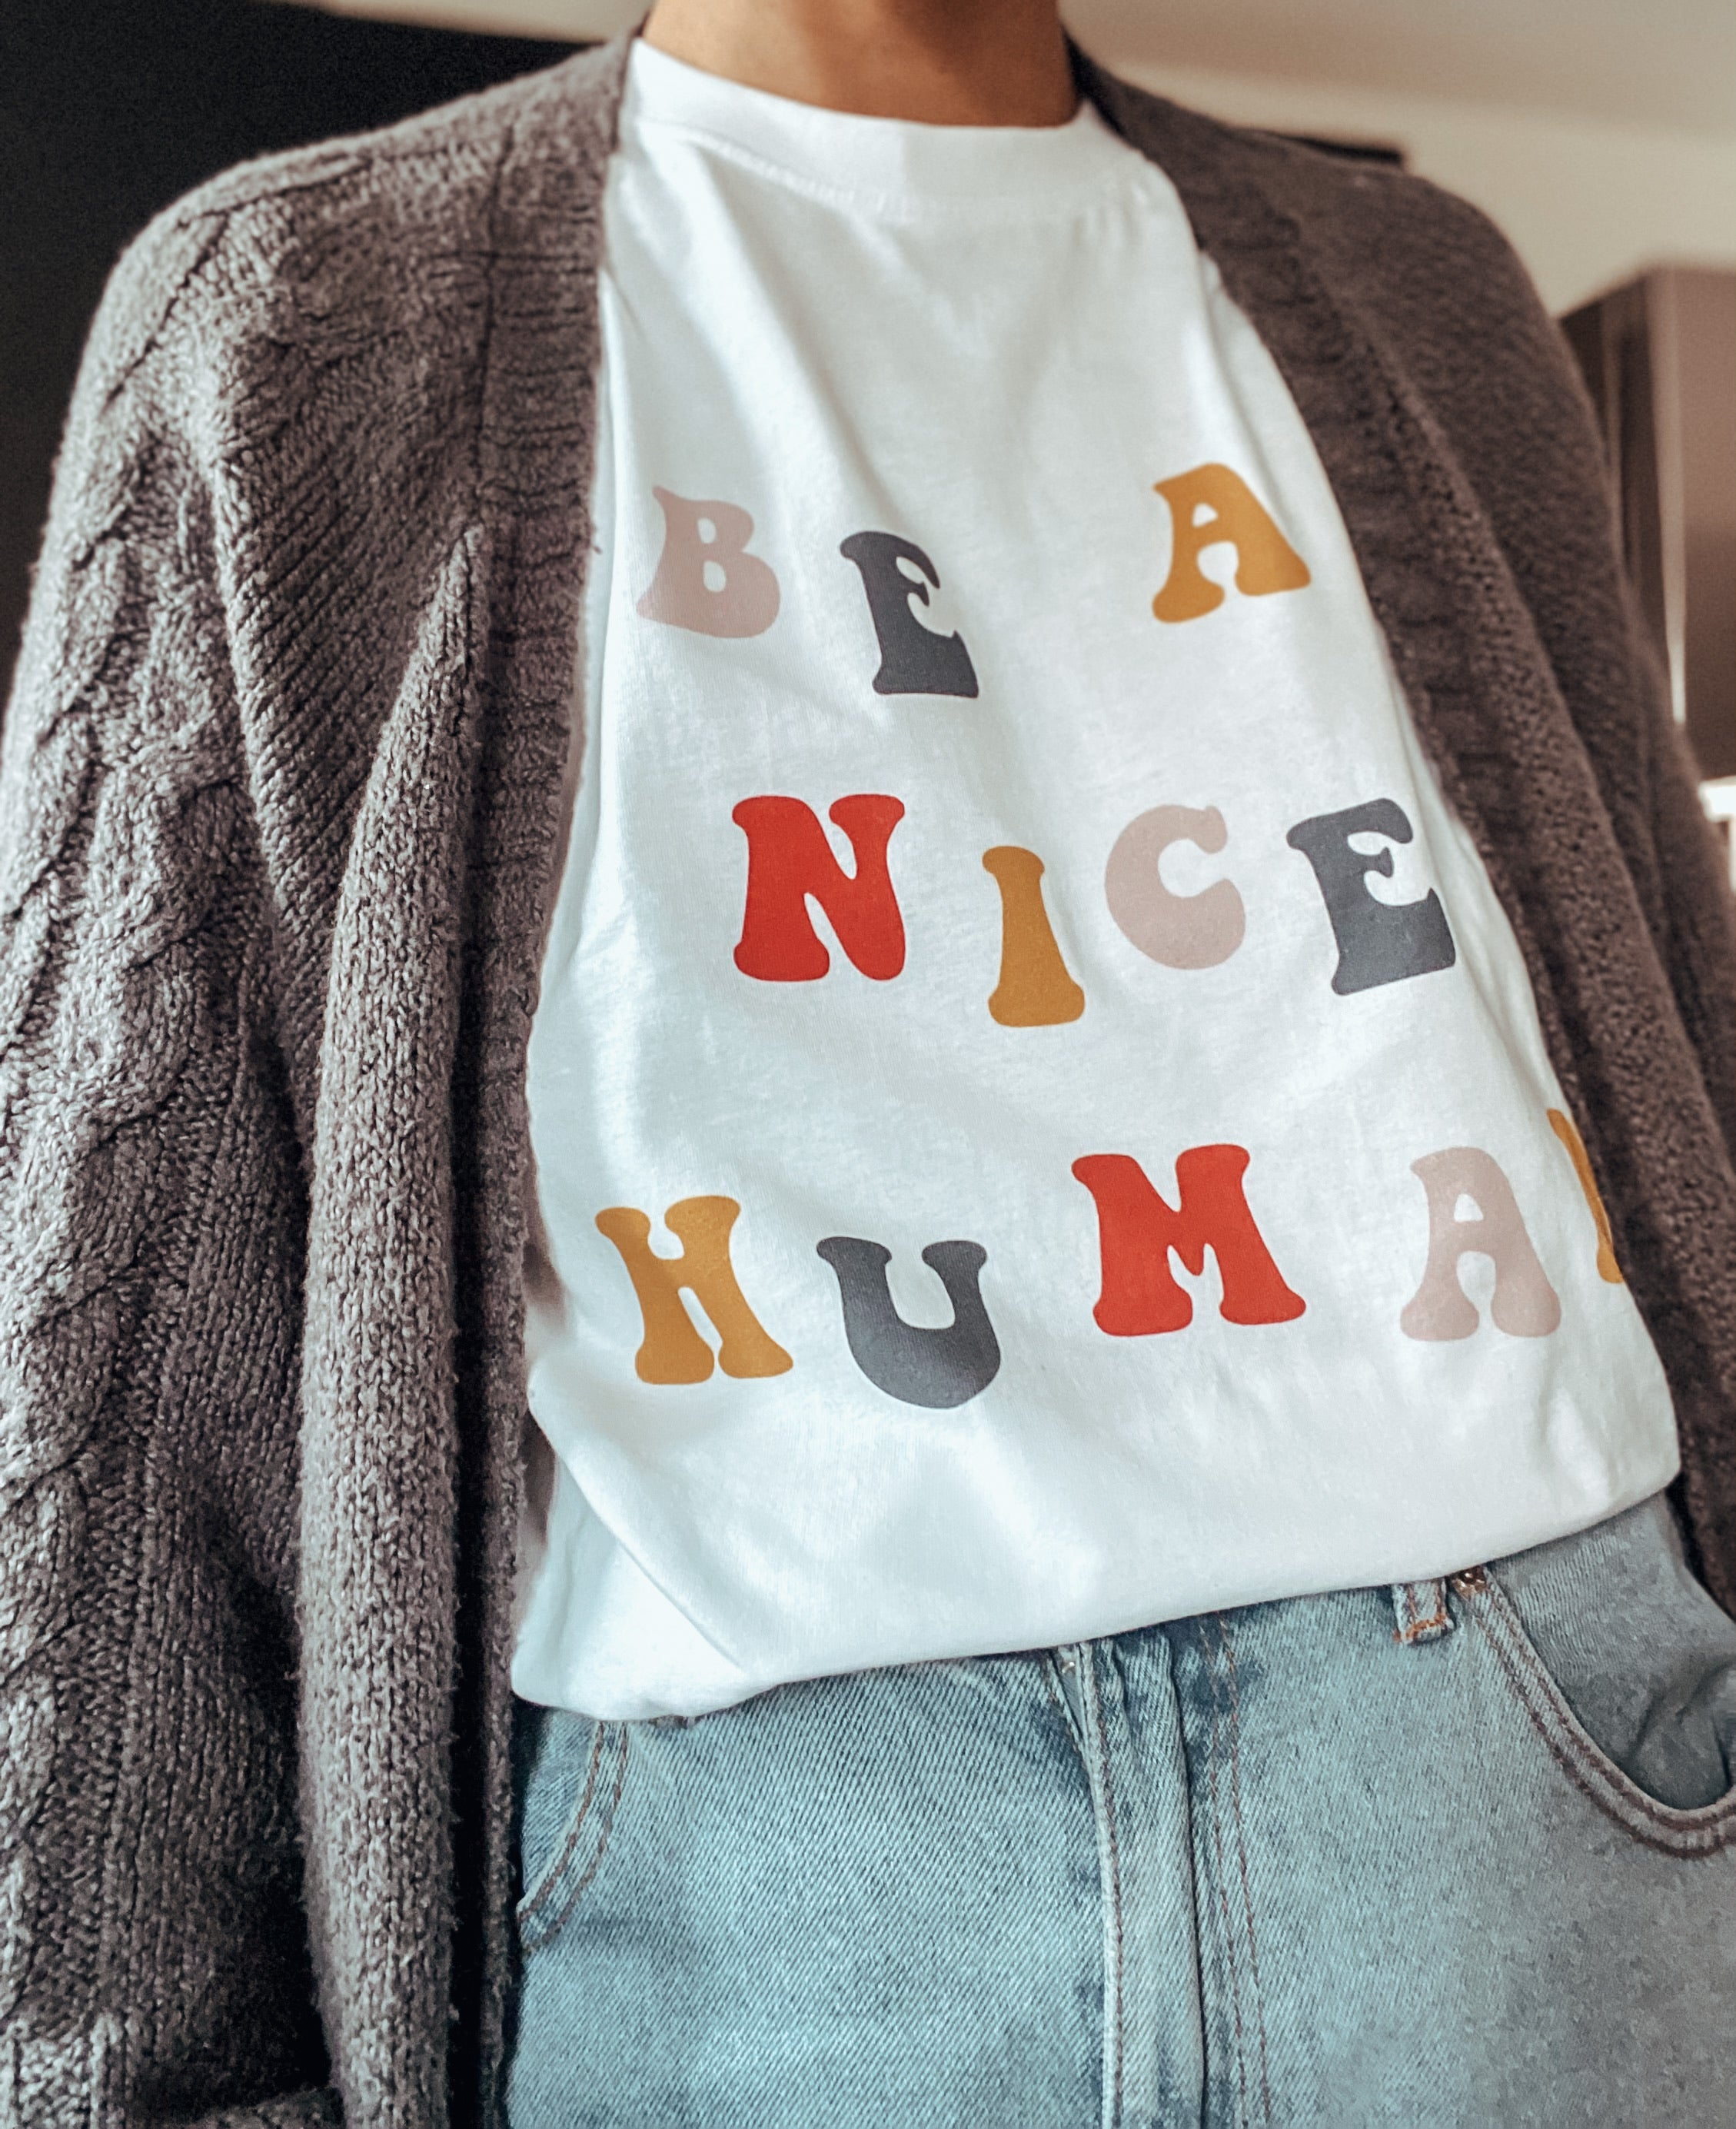 BE A NICE HUMAN | UNISEX WHITE TEE